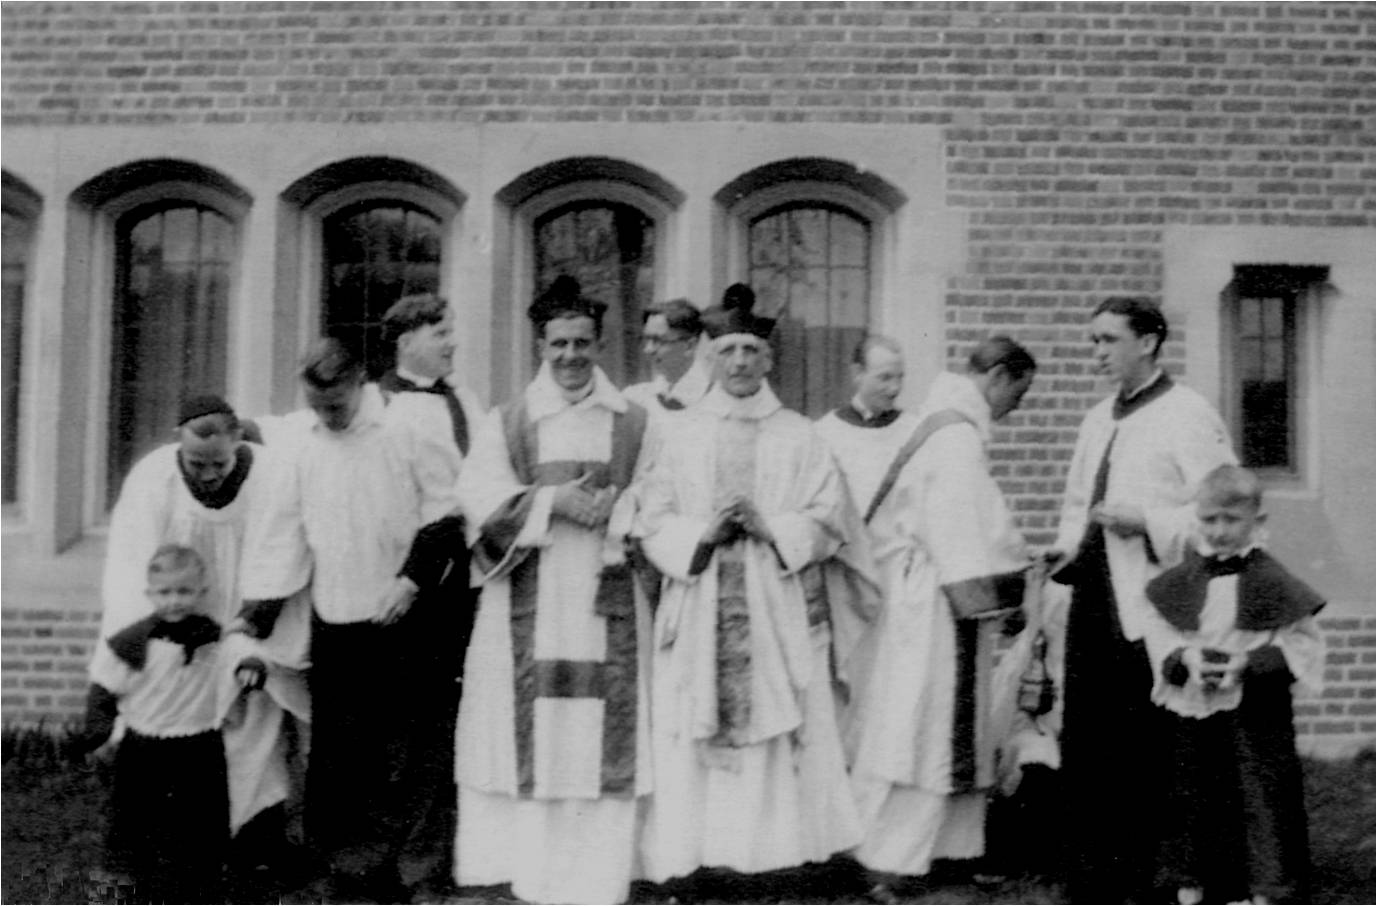 St. Andrew's longest-serving rector Rev. Neil Stanley (1920-1942) is pictured talking to someone in the back row. Associate priests in the front row appear to be Rev. John Hudston (1924-1937) on the right and either Rev. Ralph Rohr (1927-1929) or Rev. W.L. Hogg (1926-1932) on the left.